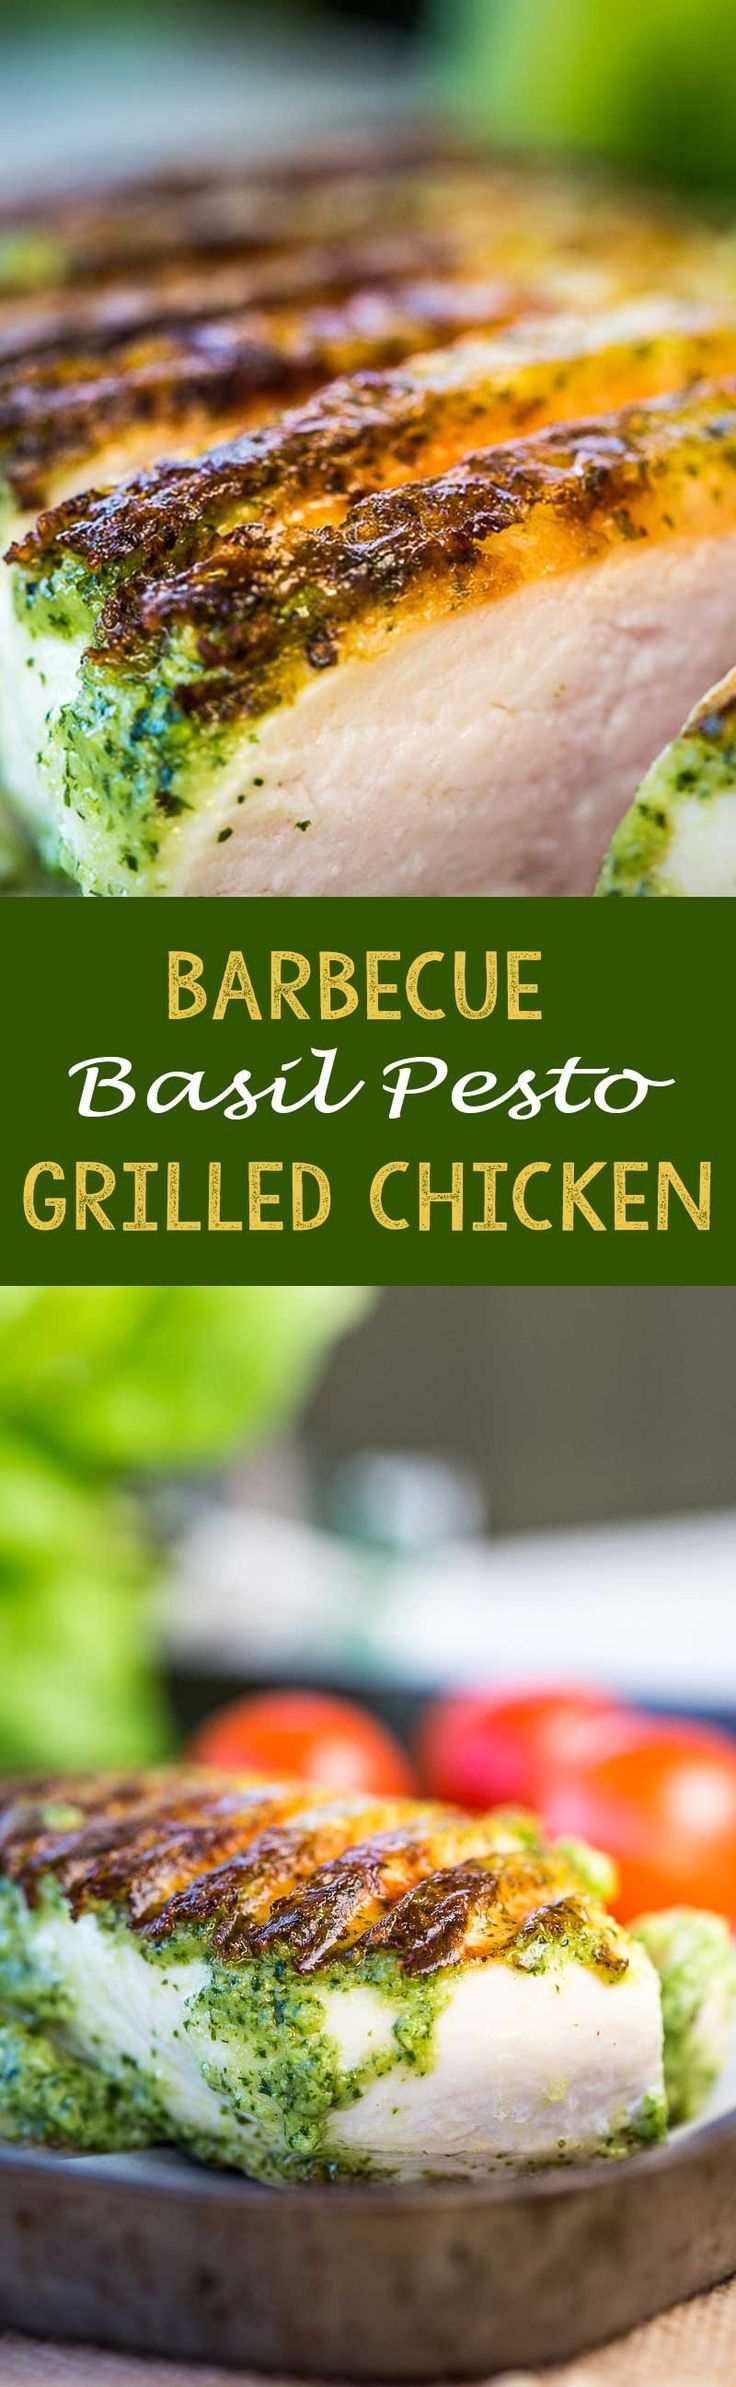 The perfect easy thing to make on a summer night on the grill! Basil Pesto Grilled Chicken. Delicious! - Eazy Peazy Mealz